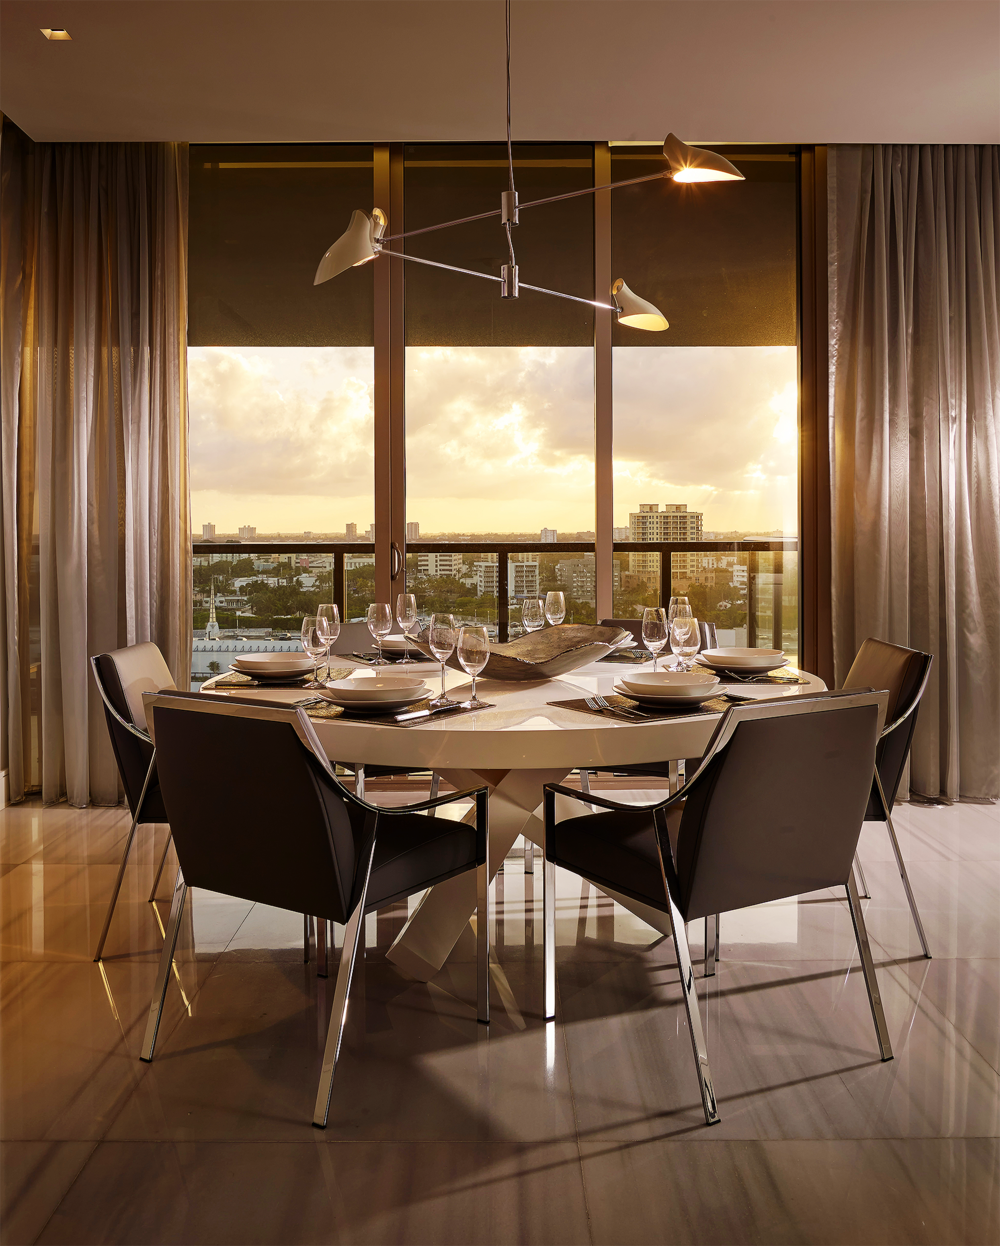 StRegis-1103s_Dining-sunset-vertical.png